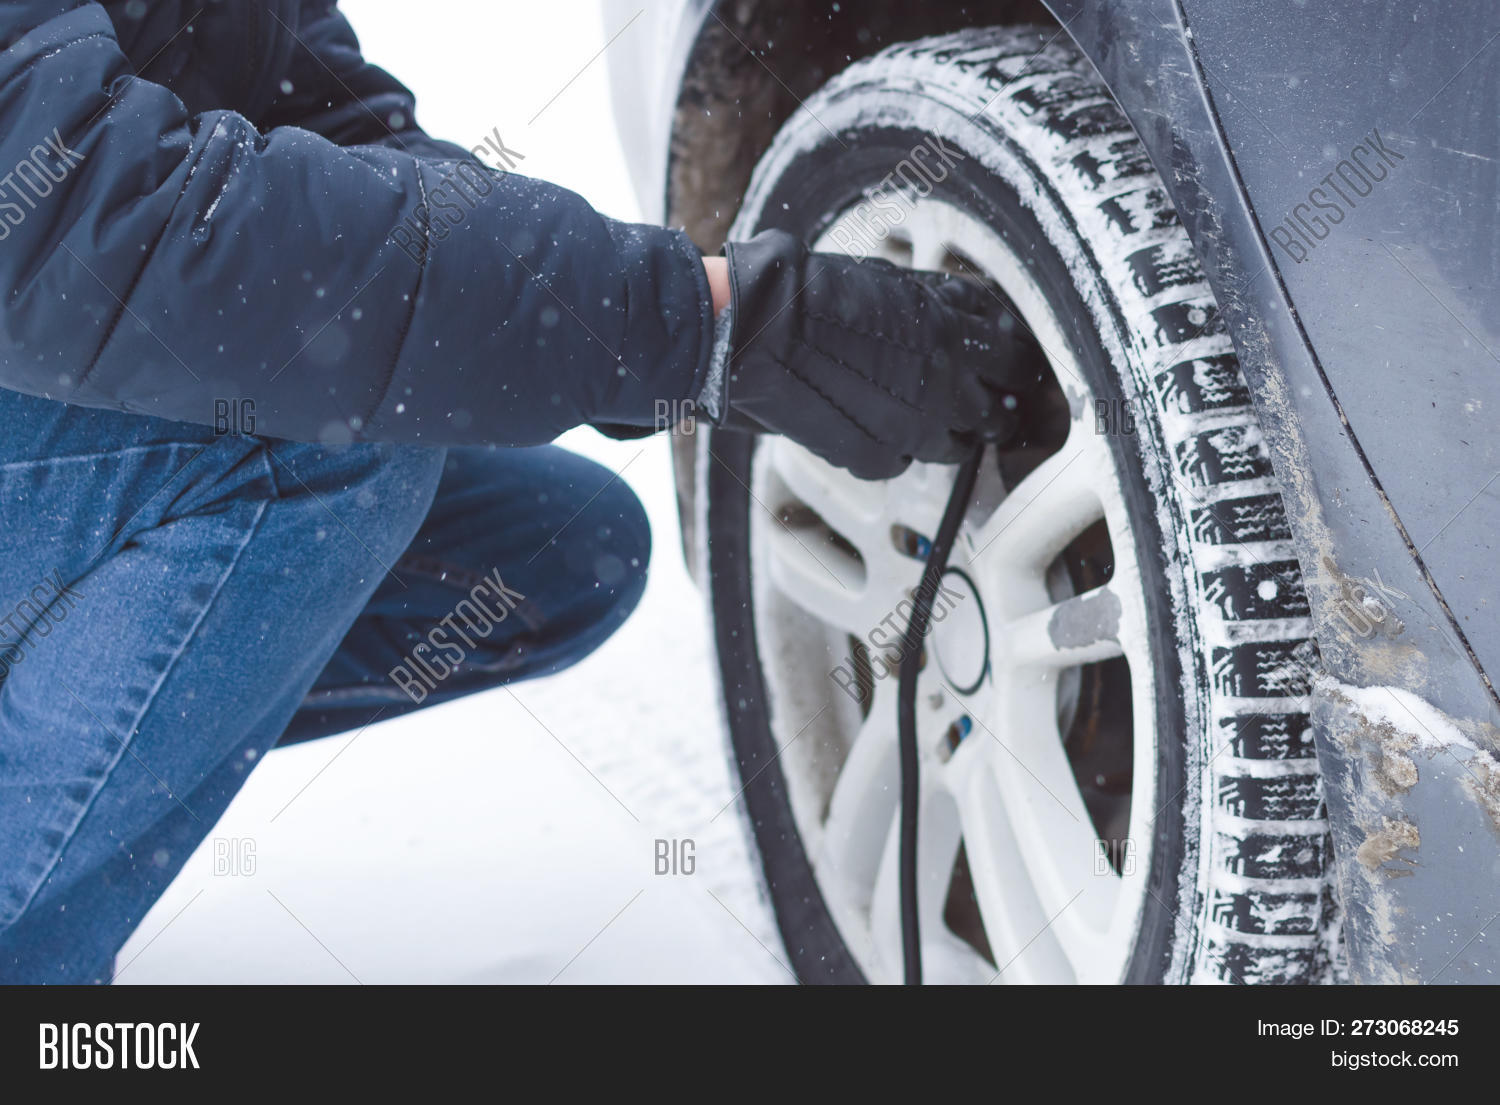 Driver Inflating Tire Image & Photo (Free Trial)   Bigstock